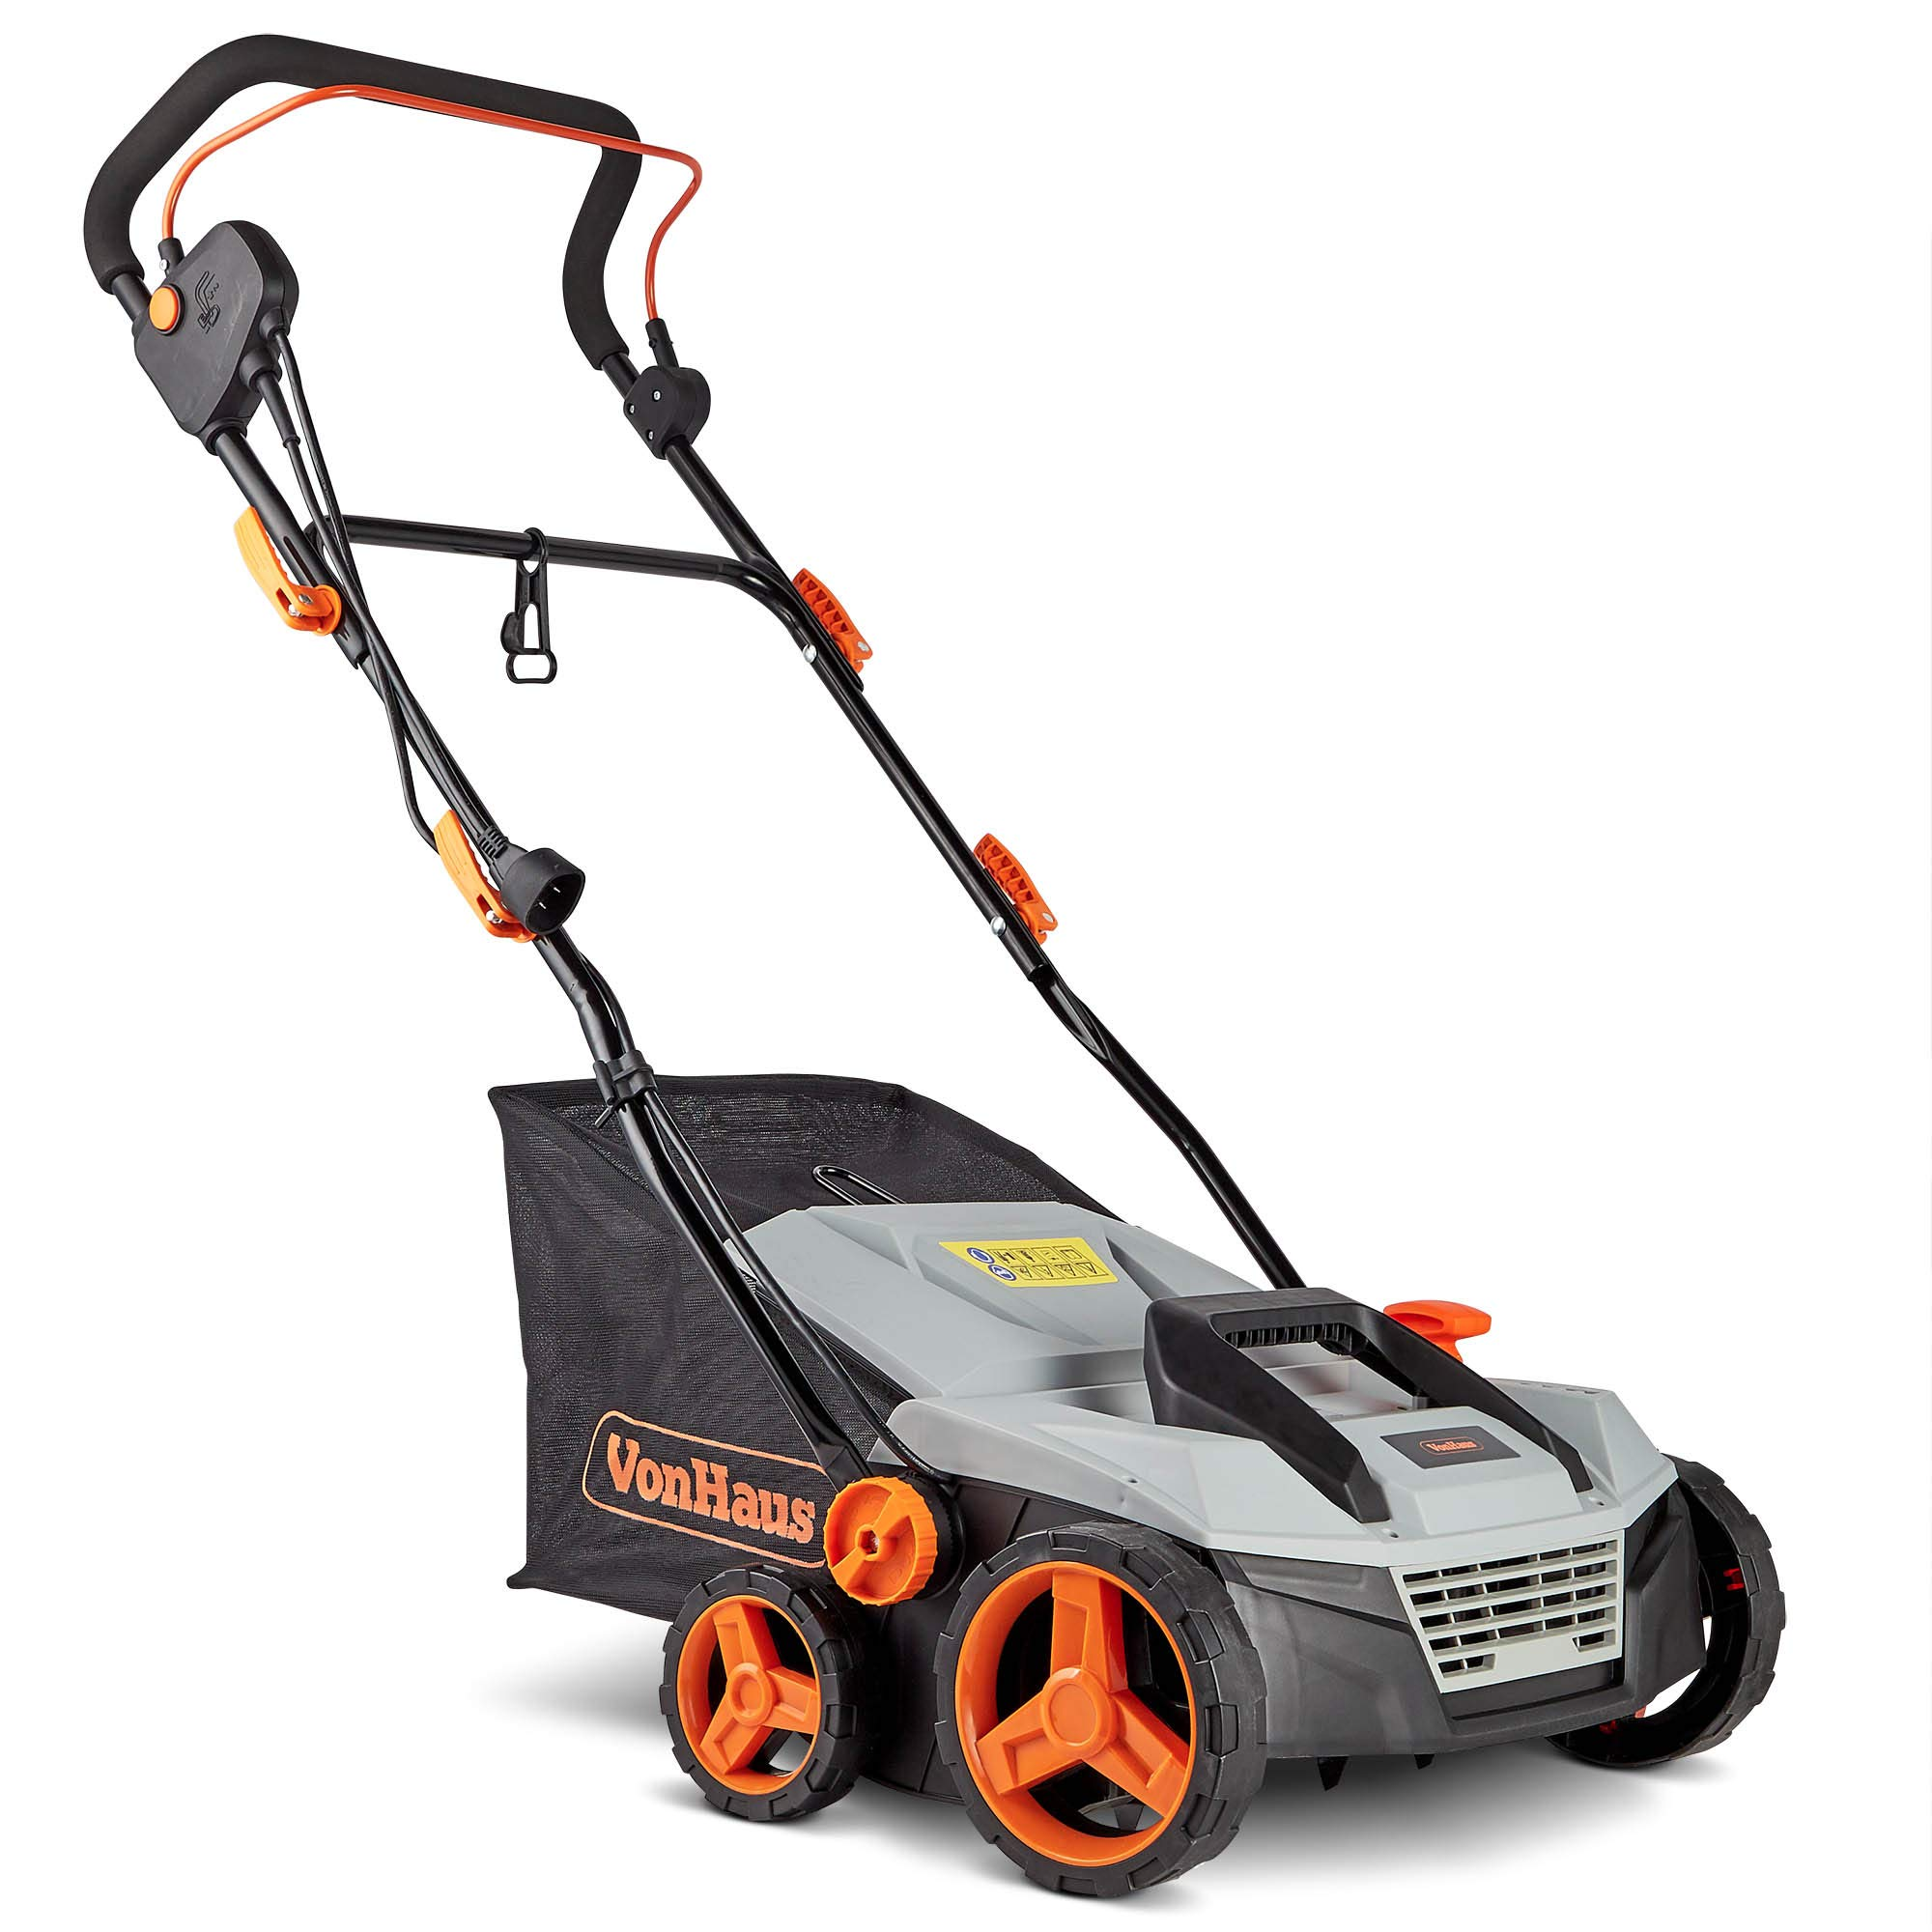 VonHaus 12.5 Amp Corded 15'' Electric 2 in 1 Lawn Dethatcher Scarifier and Aerator with 5 Working Depths and 45L Collection Bag - Perfect for Lawn Health and Maintenance